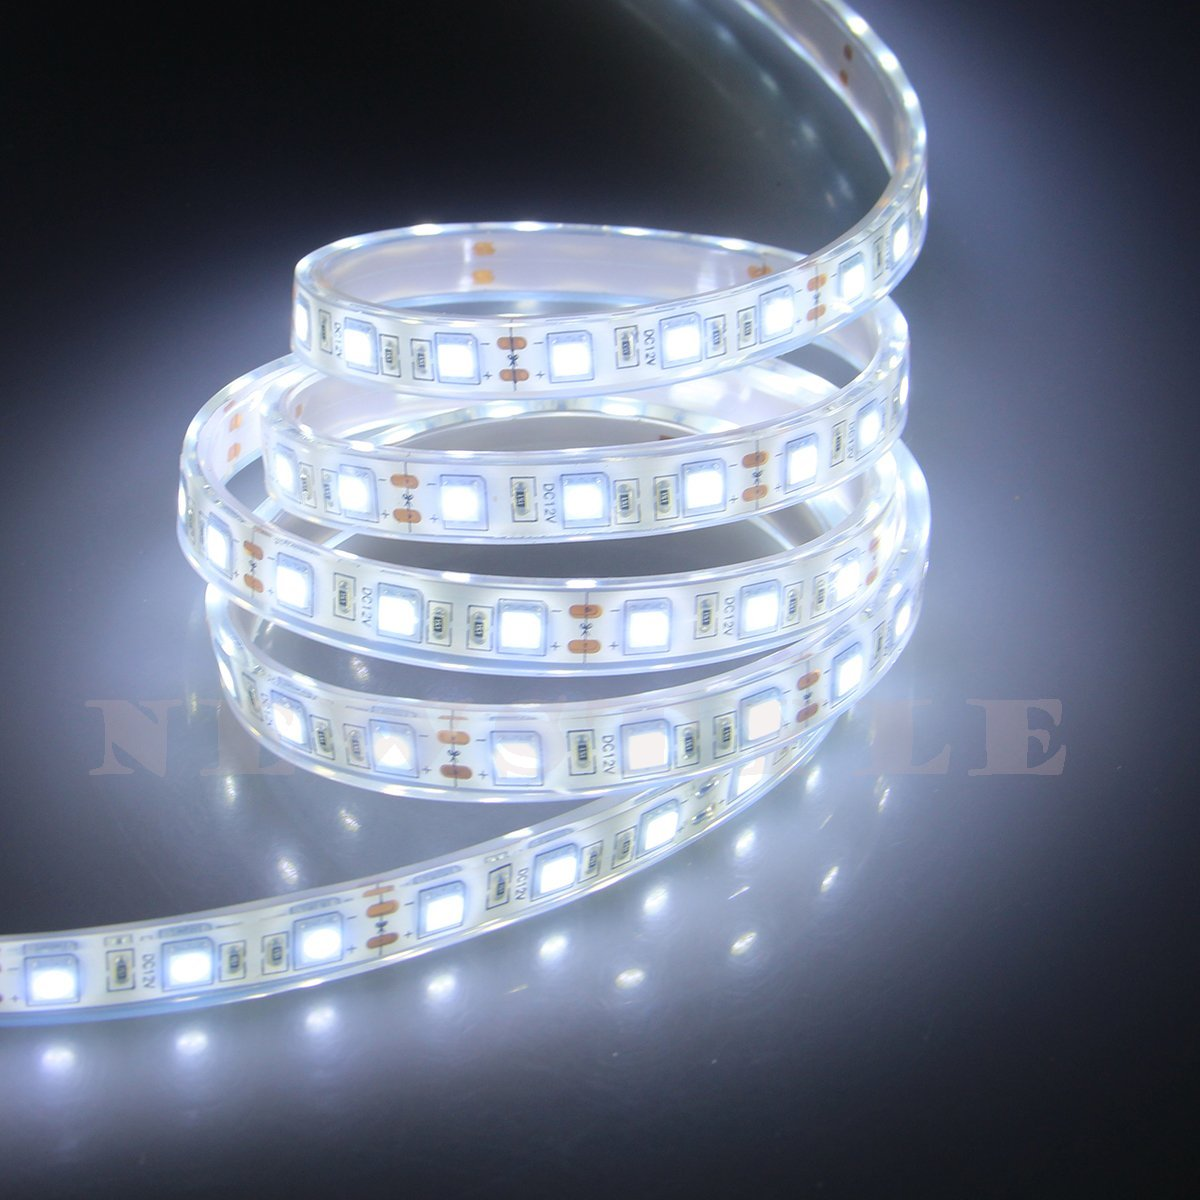 NEWSTYLE IP68 Fully Submersible Waterproof LED Flexible Strip - 16.4 Feet 5M 12 Volt Flexible LED Strip Light - SMD5050 300LEDs - Cool White